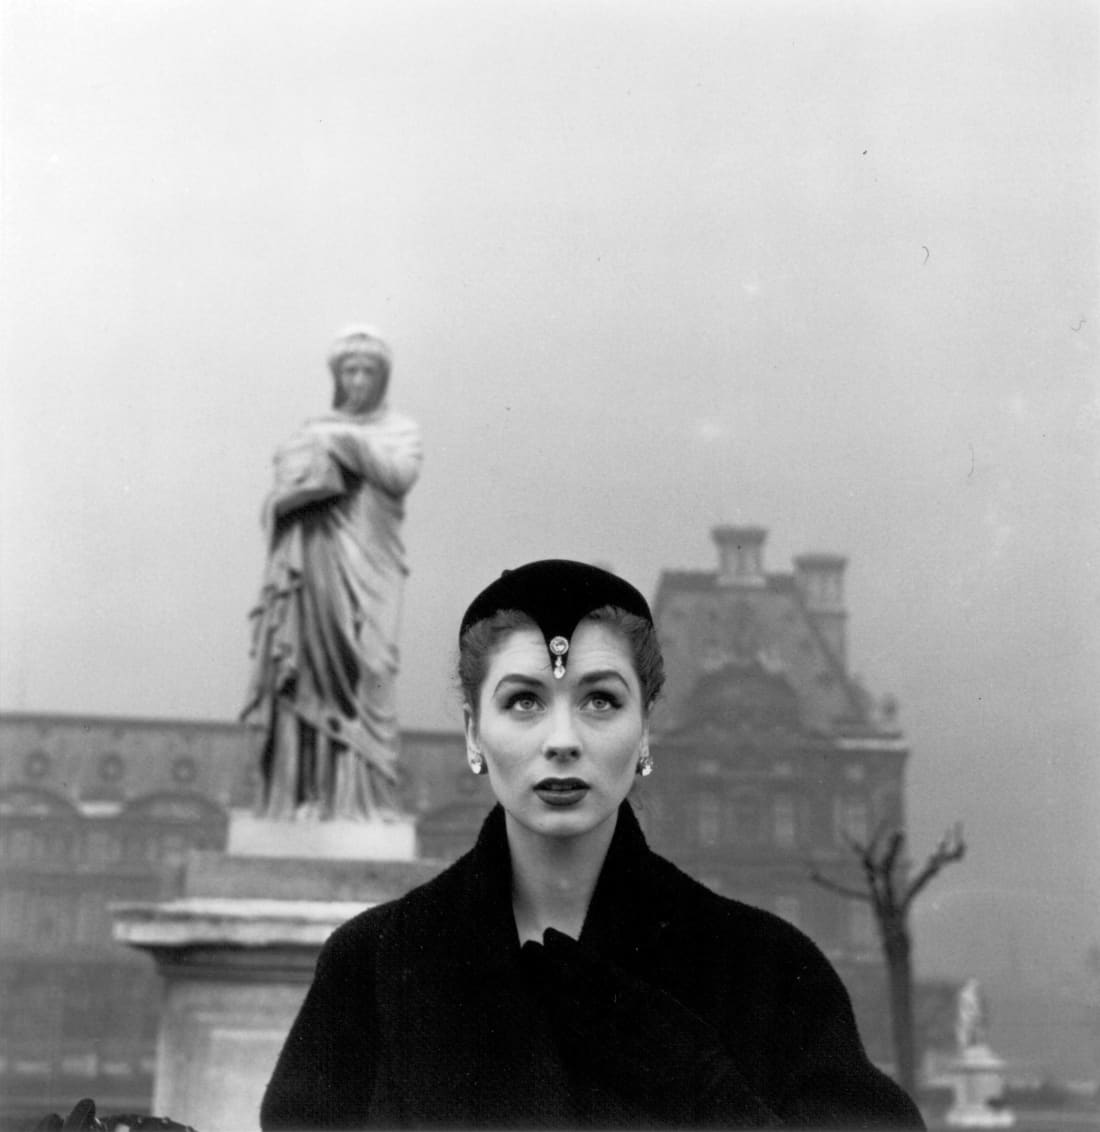 Fotó: Louise Dahl-Wolfe: Suzy Parker in Dior Hat, Tuileries, Paris, 1950 © Courtesy Louise Dahl-Wolfe/Center for Creative Photography/Arizona Board of Regents